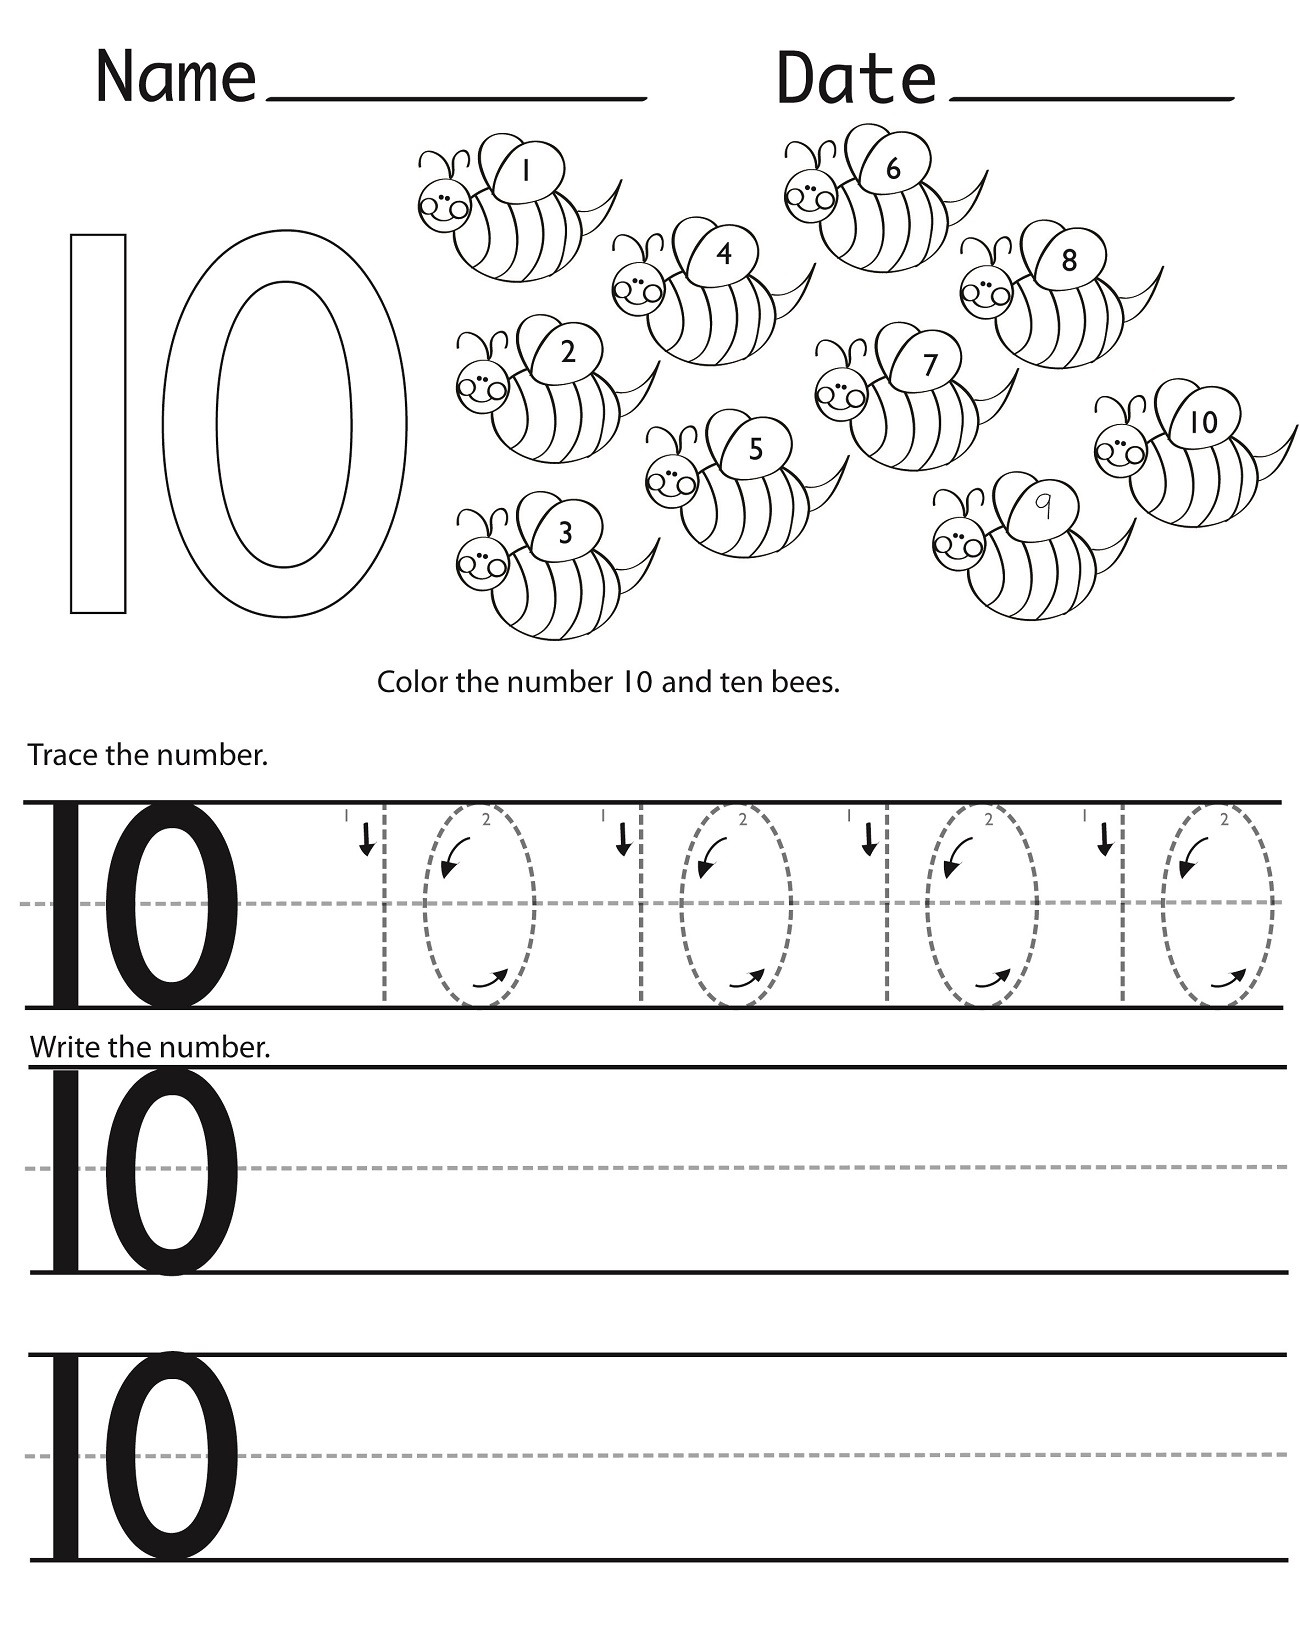 Math Worksheet For Numbers 10 20